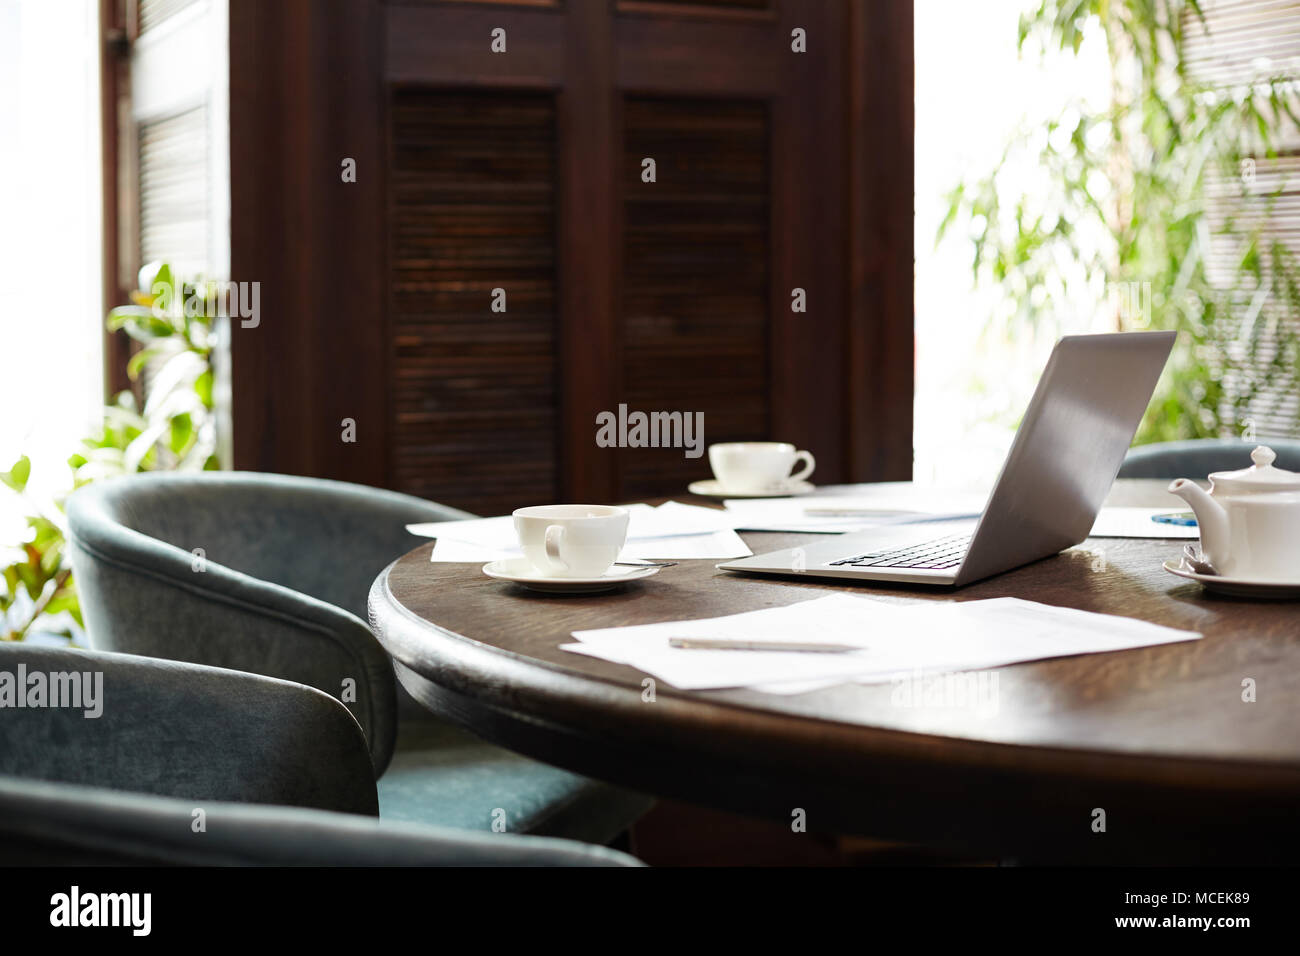 Round Wooden Conference Table Stock Photos Round Wooden Conference - Round wood conference table